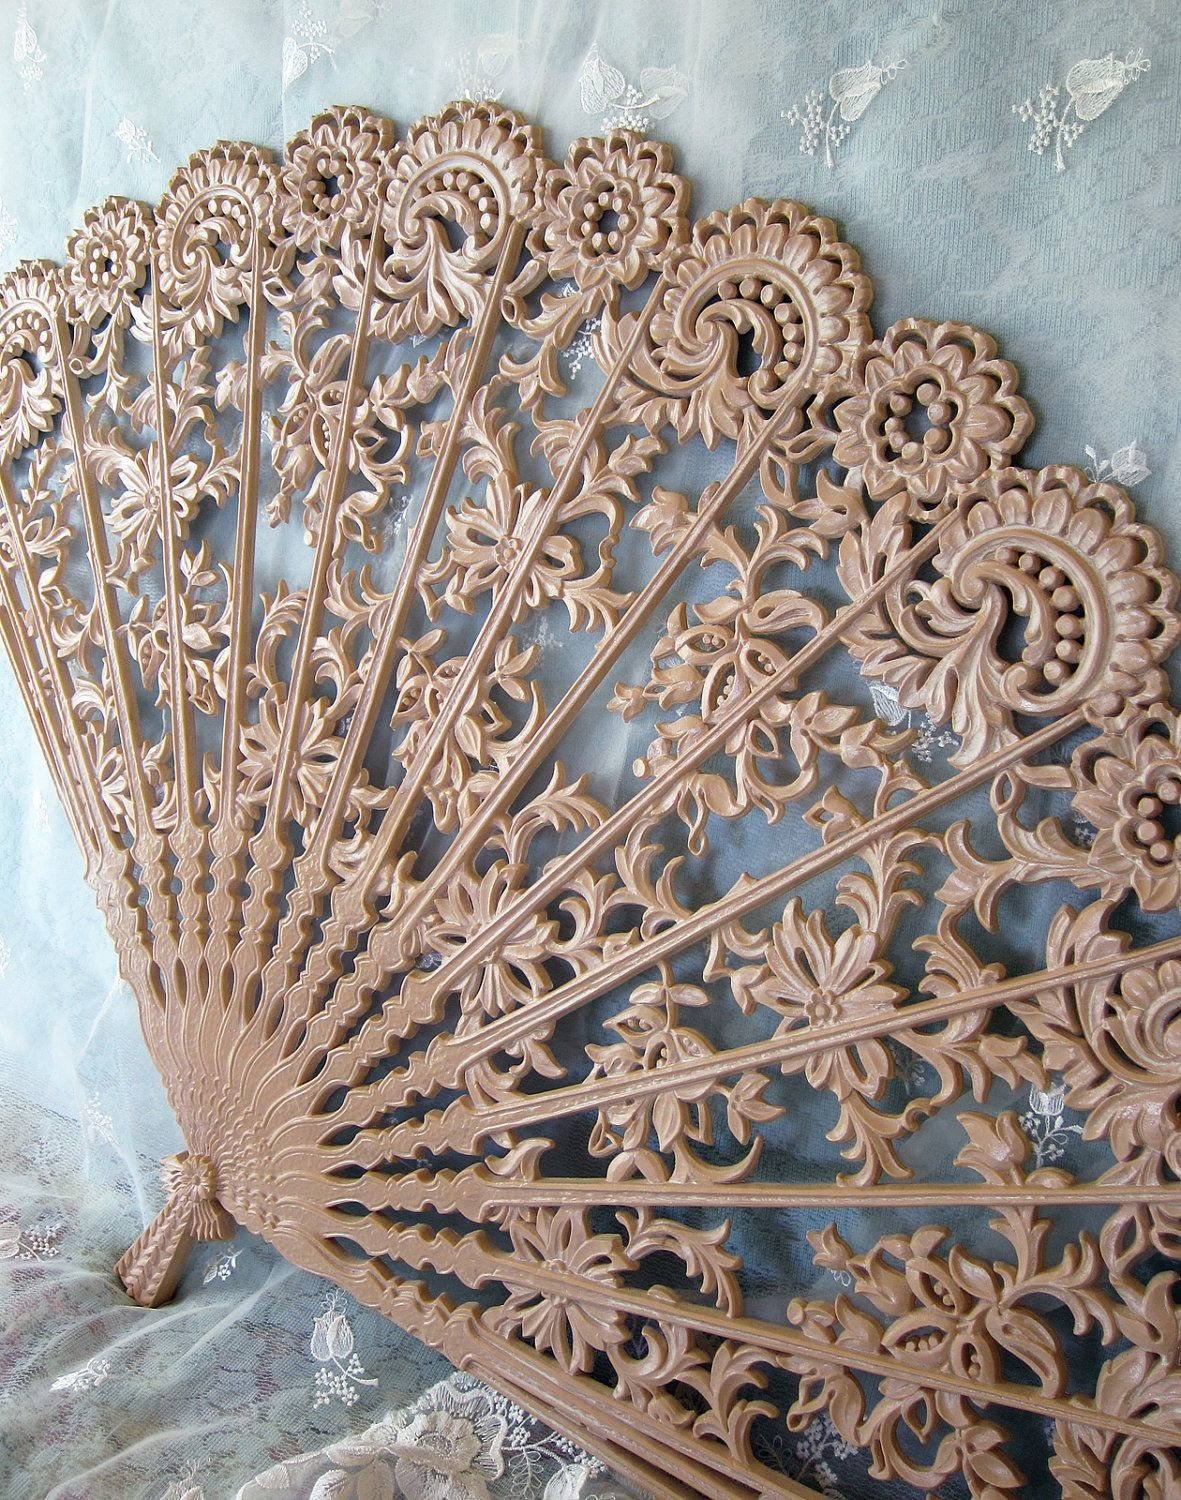 Wall Fan Decor - Home Decorating Ideas